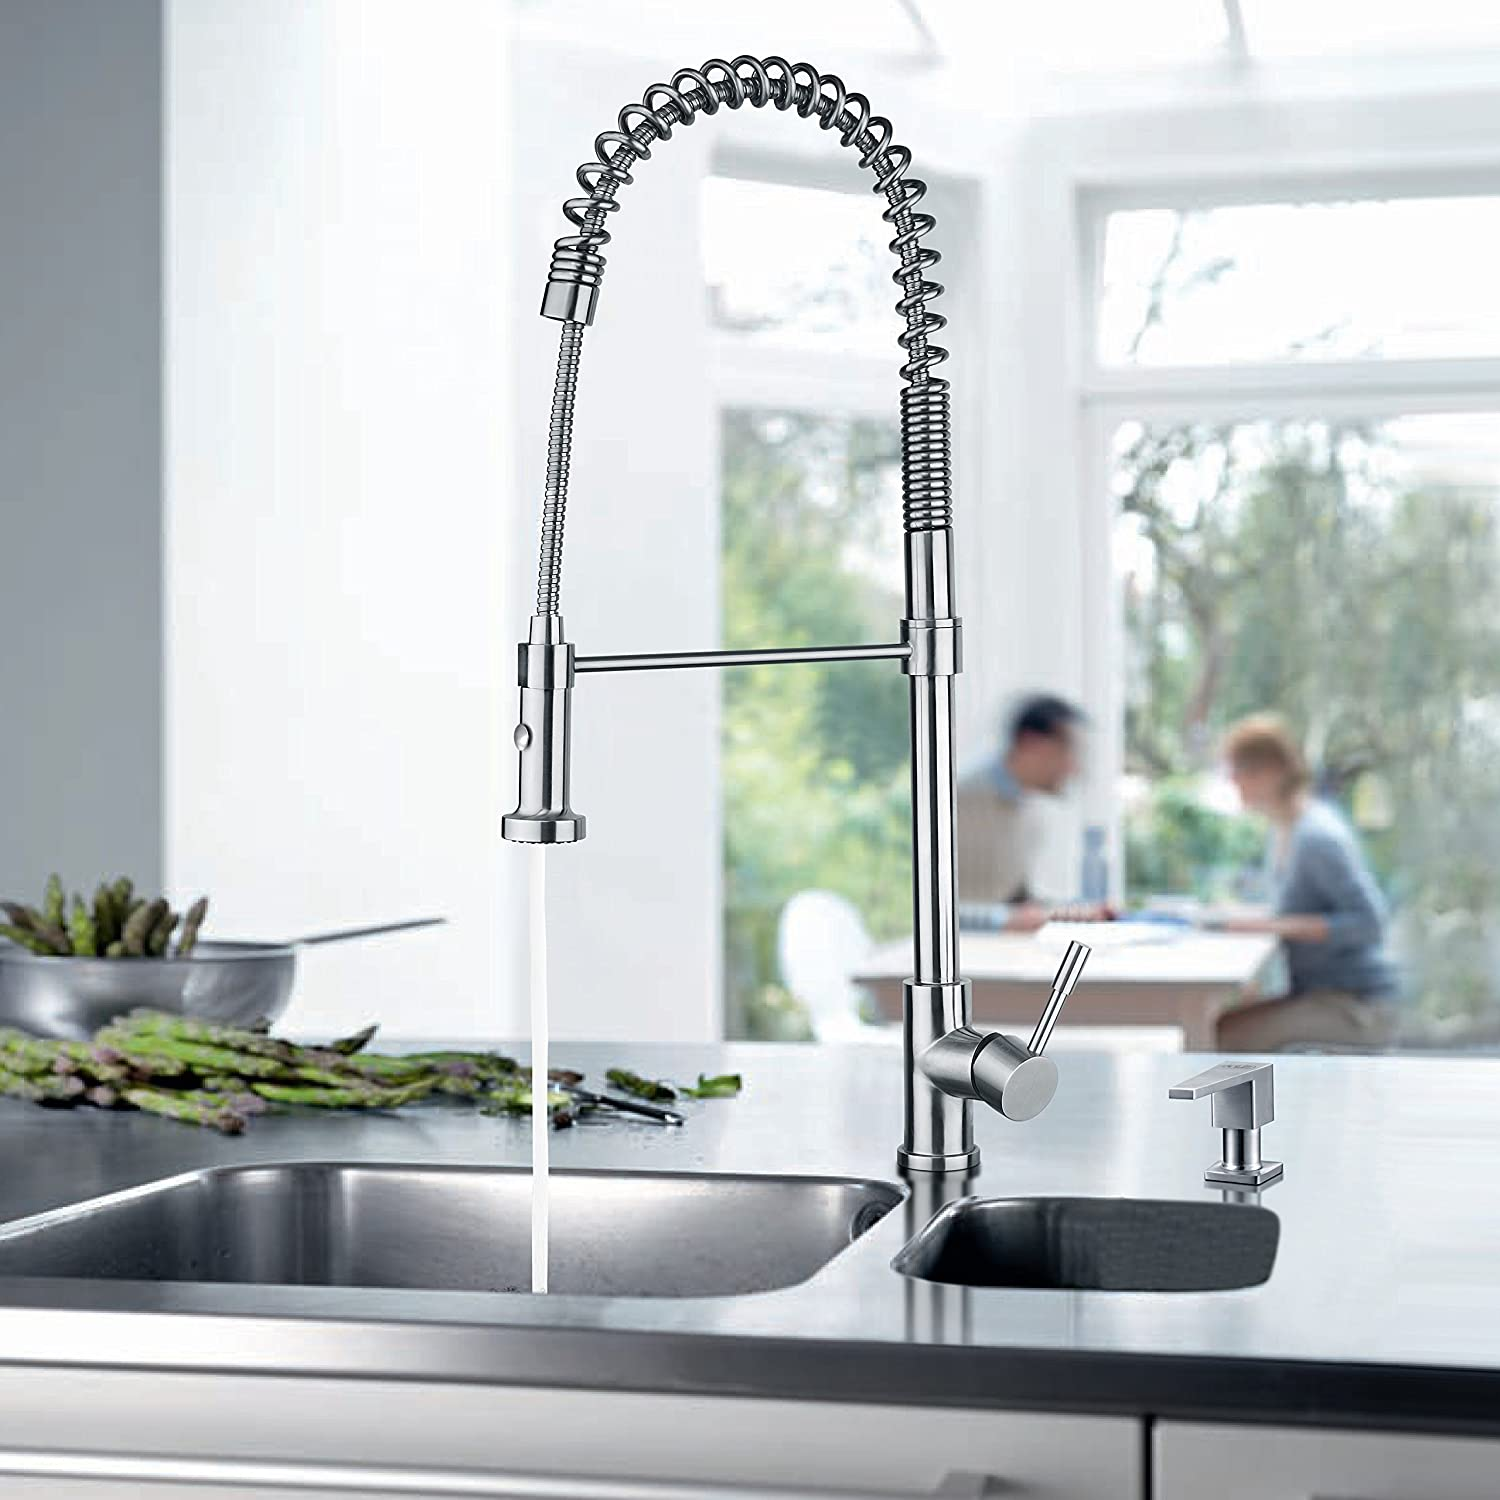 co awesome inspiration small stunning faucet faucets including coiled mindcommerce home kitchen fancy